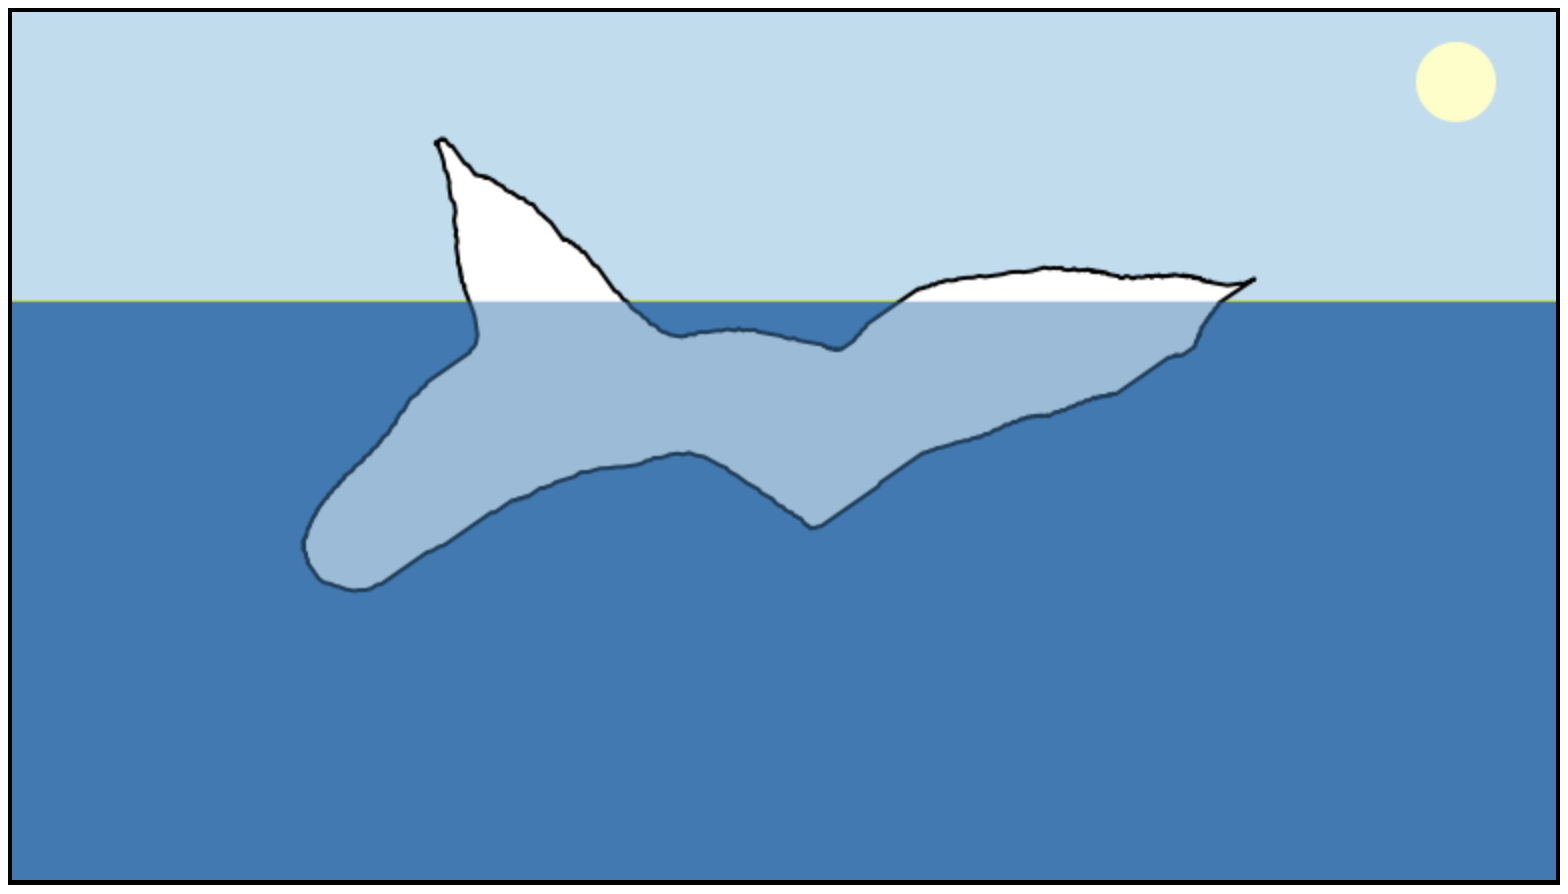 A screenshot of a rather funky looking hand-drawn iceburg.